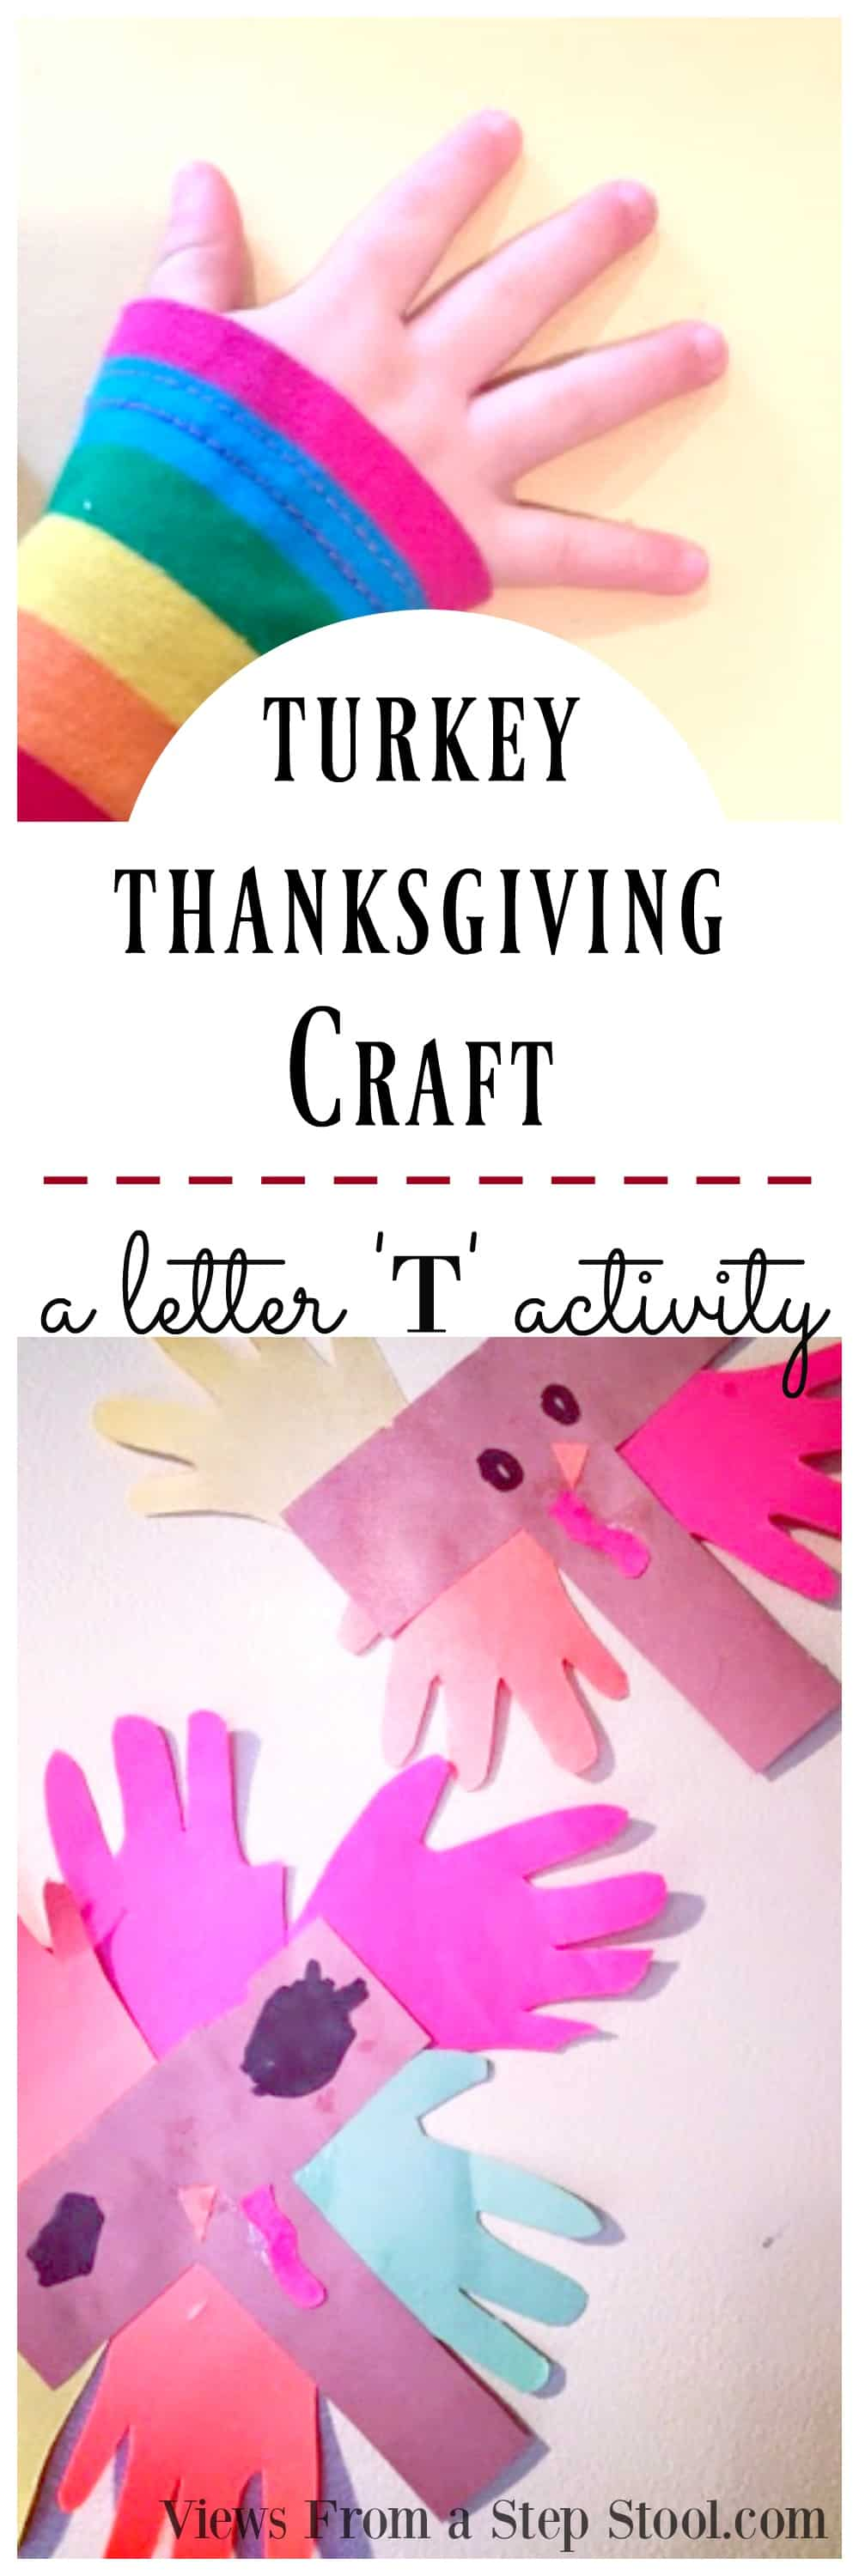 turkey-thanksgiving-craft-pin